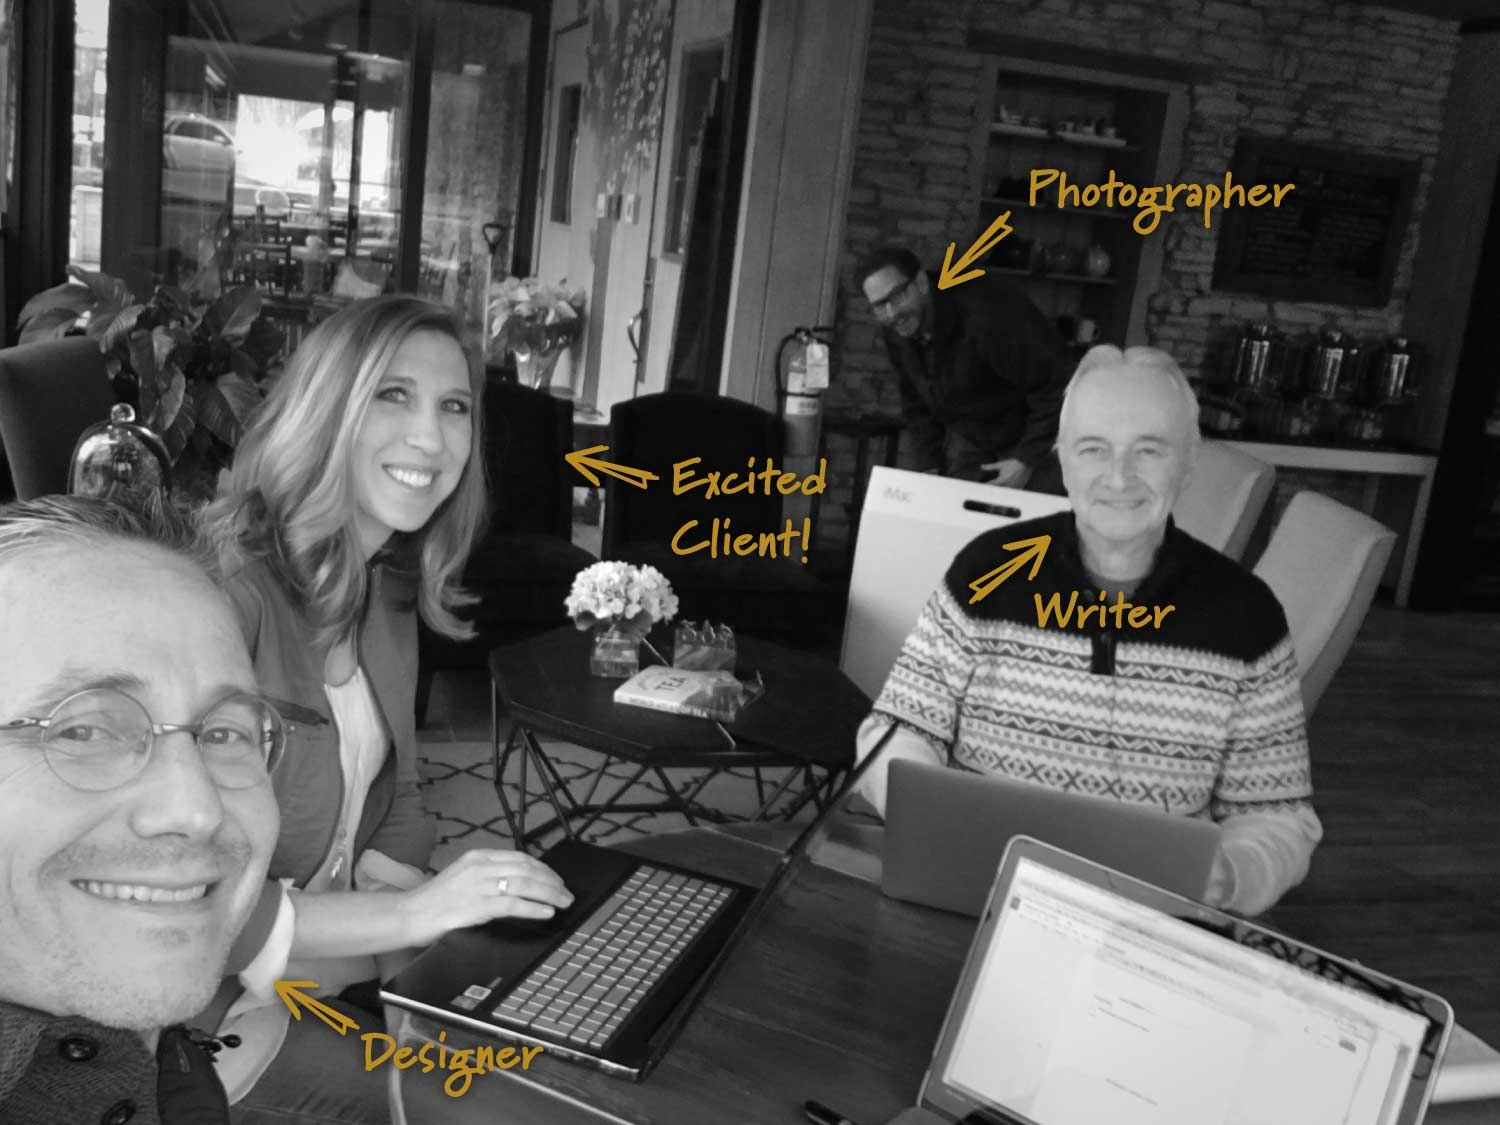 Our first website built in a single day: The Tea Tree in Batavia. From left to right: Gary Ricke, Melissa Hartmann, Andrew Schones & Richard DeVeau.